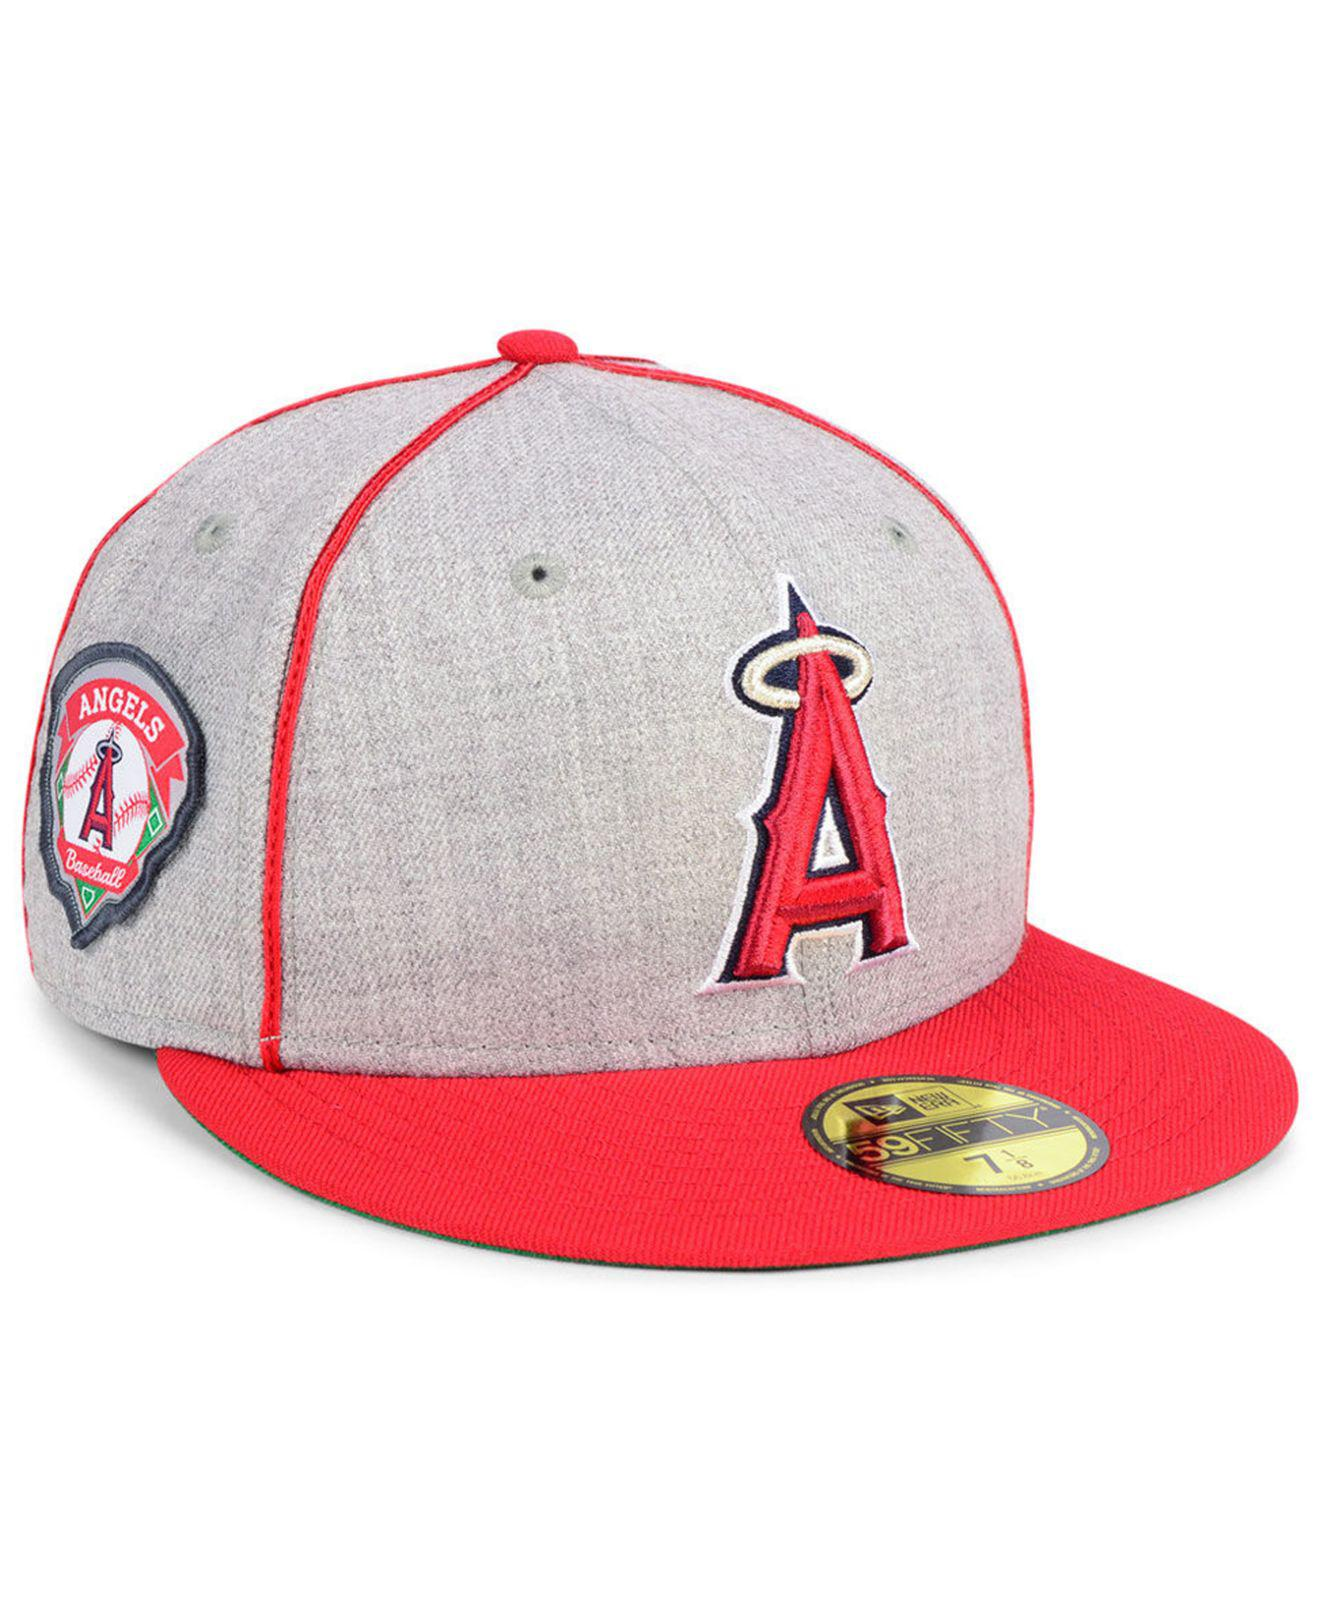 huge selection of c35f1 d69c3 KTZ - Red Los Angeles Angels Stache 59fifty Fitted Cap for Men - Lyst. View  fullscreen